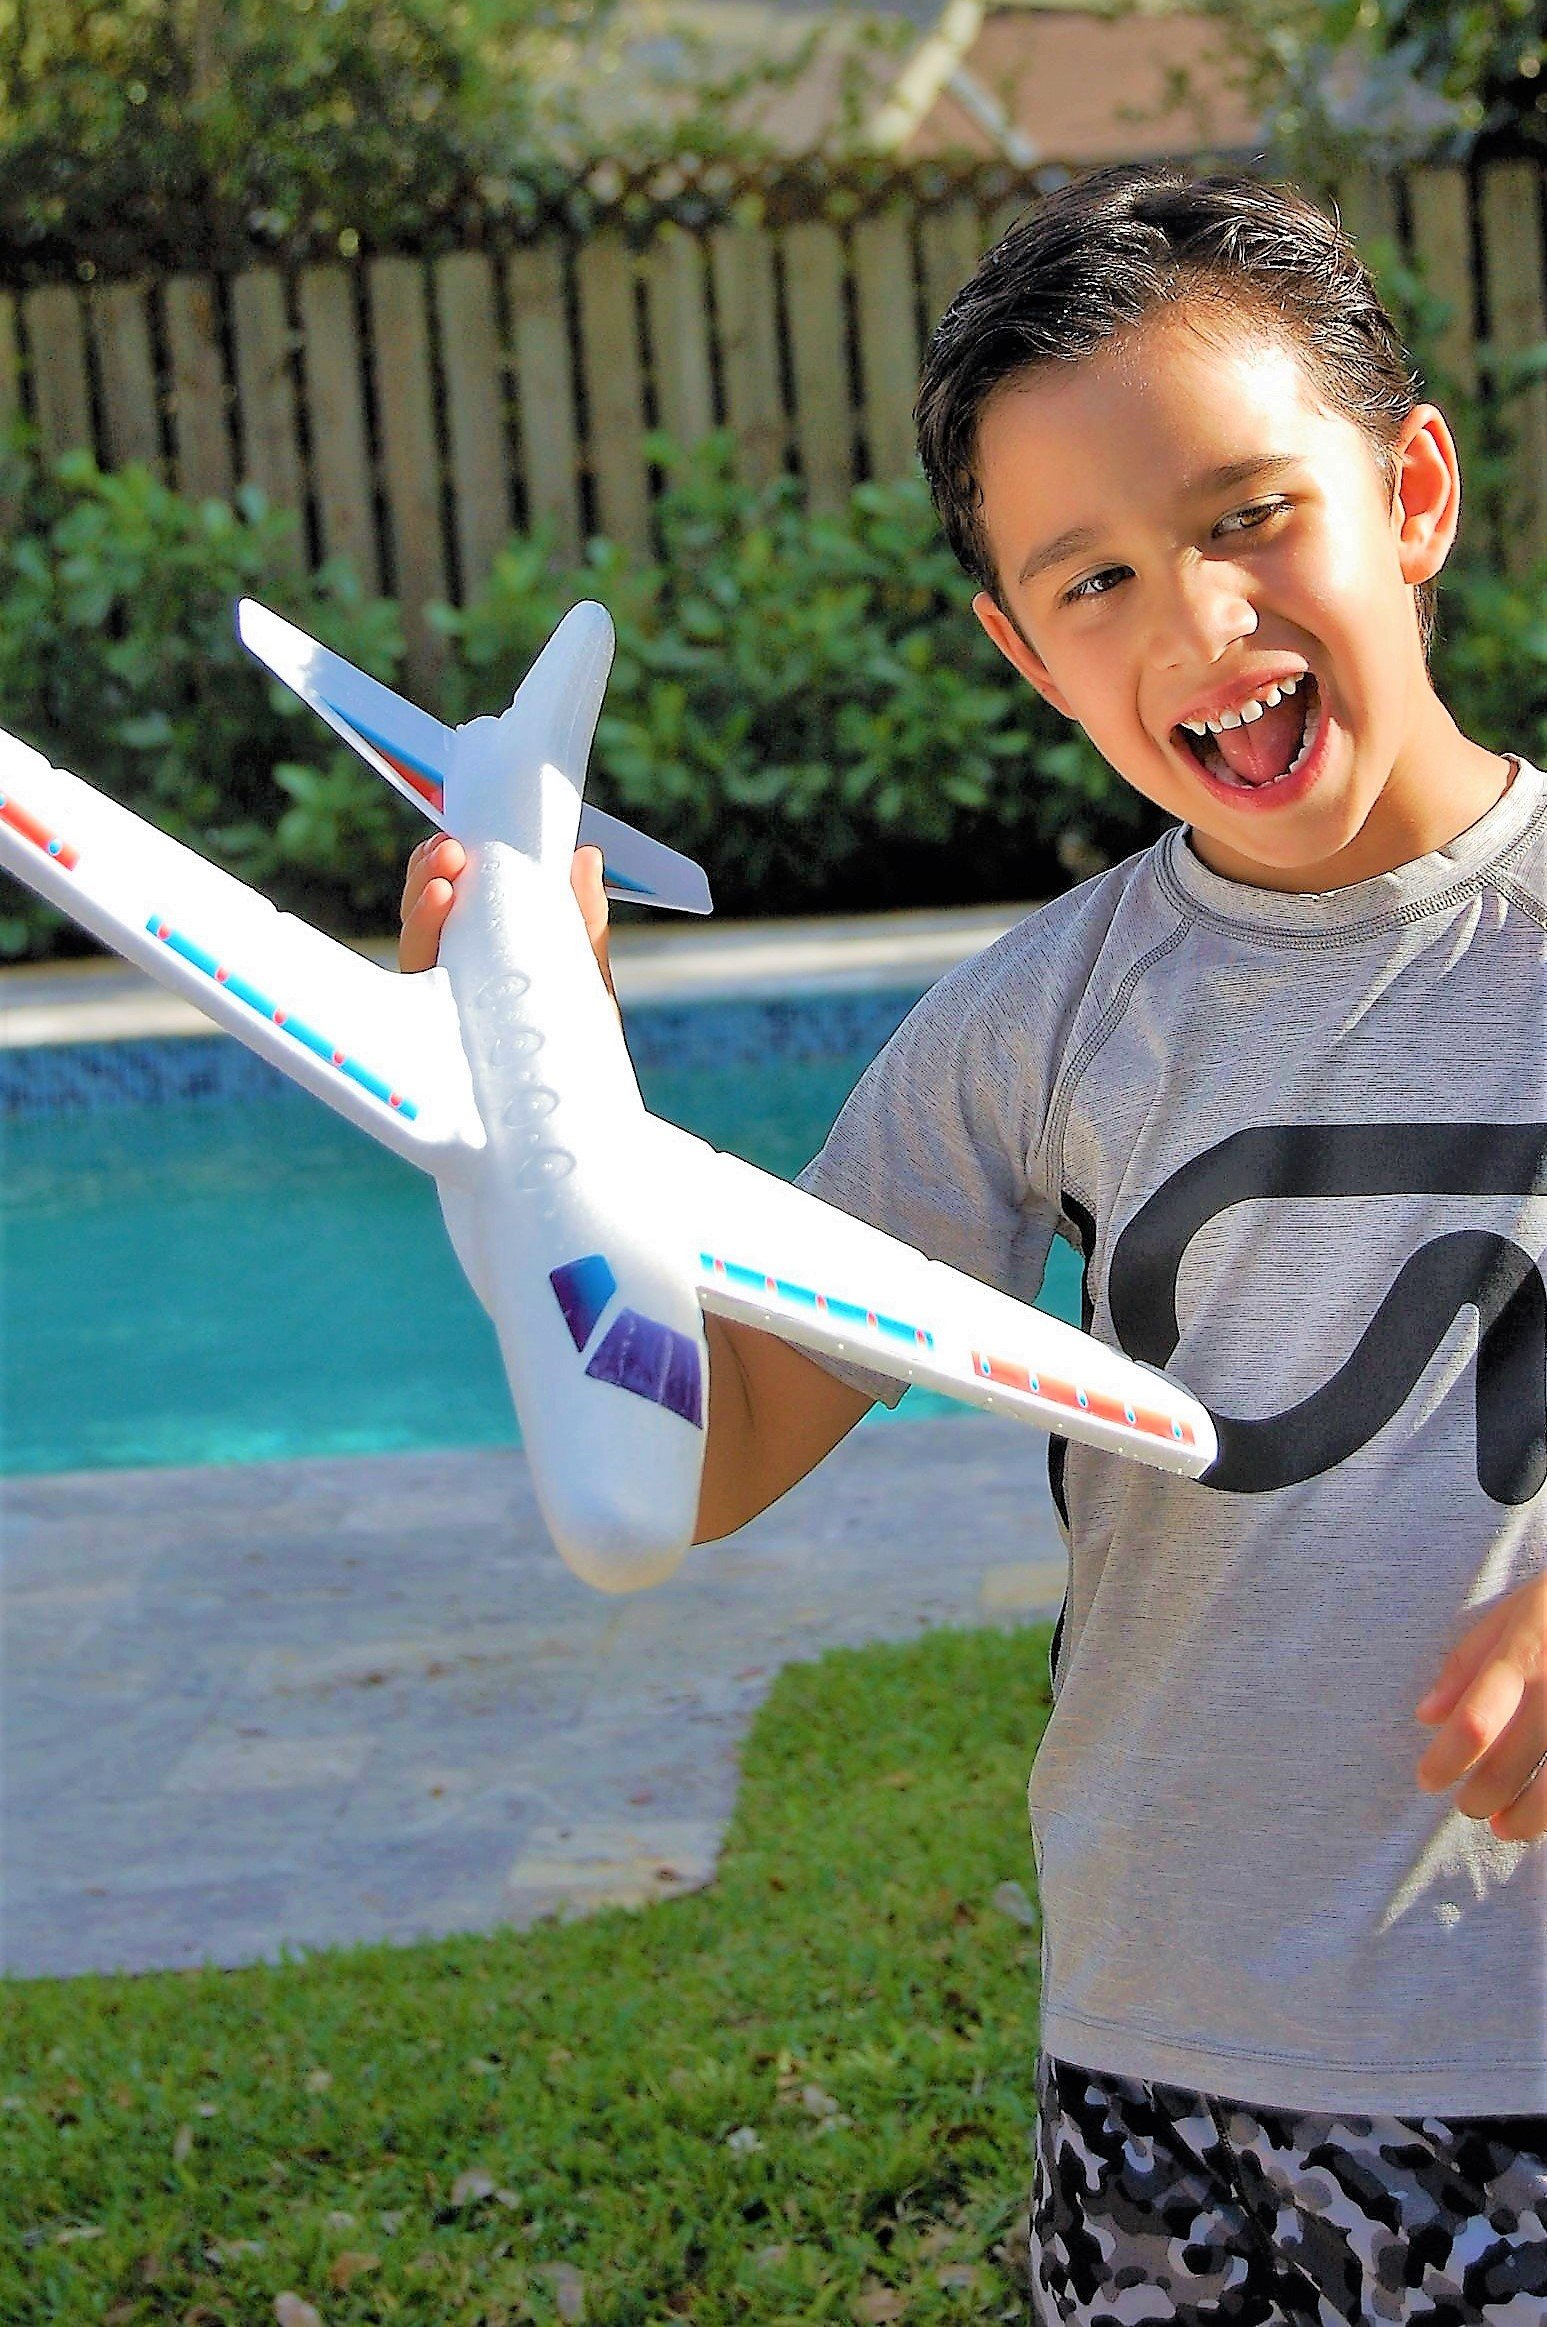 2GoodShop Giant Airplane Glider Kids Fying Toy Build It, Throw It and Watch It Glide Hours of Outdoor Fun Pack of 6 | Item #1030 by 2GoodShop (Image #5)